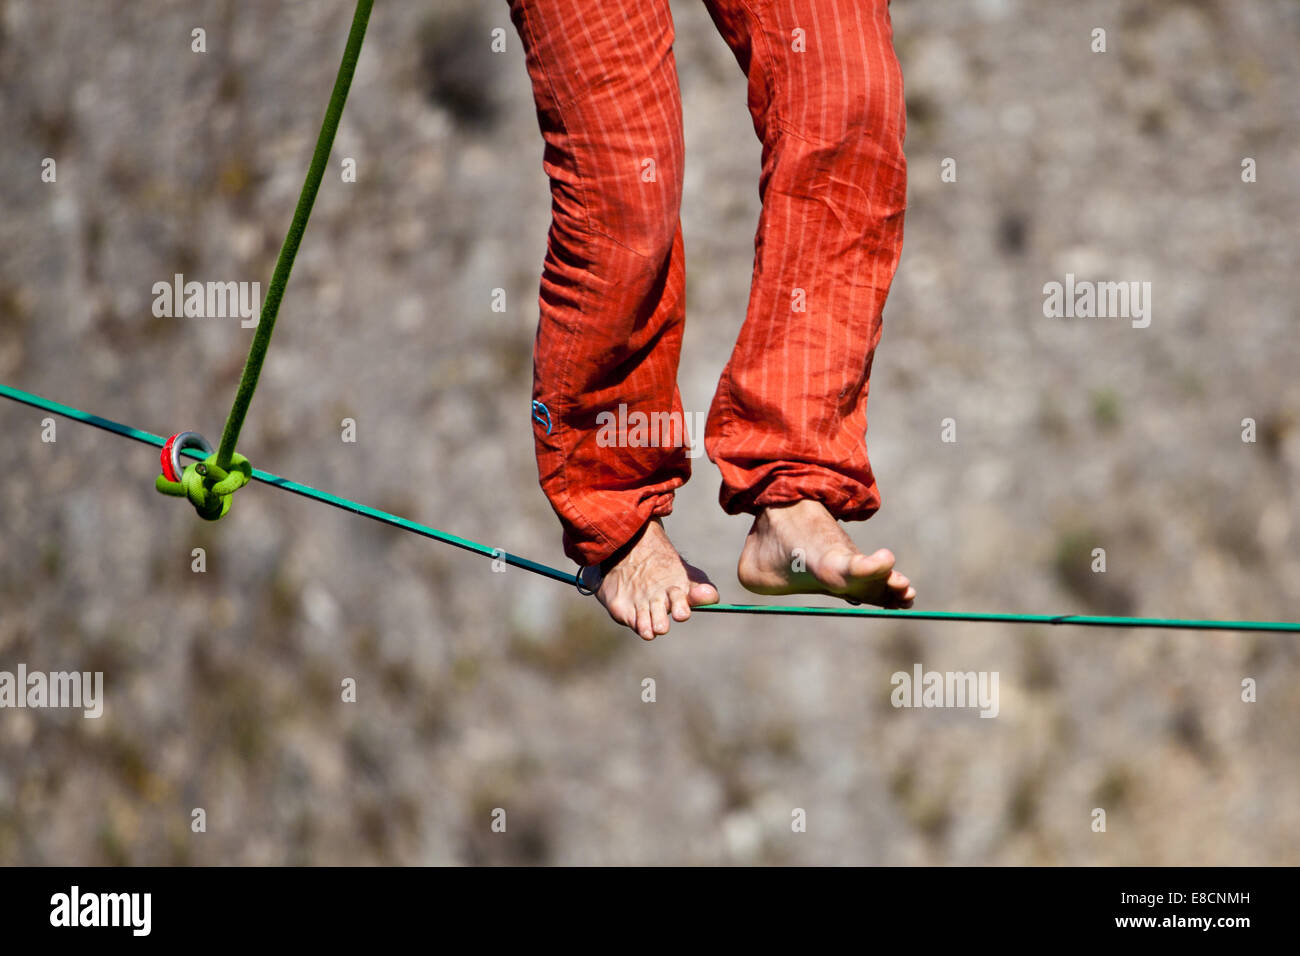 Slacklining is a practice in balance that typically uses nylon or polyester webbing tension between two anchor points. Stock Photo